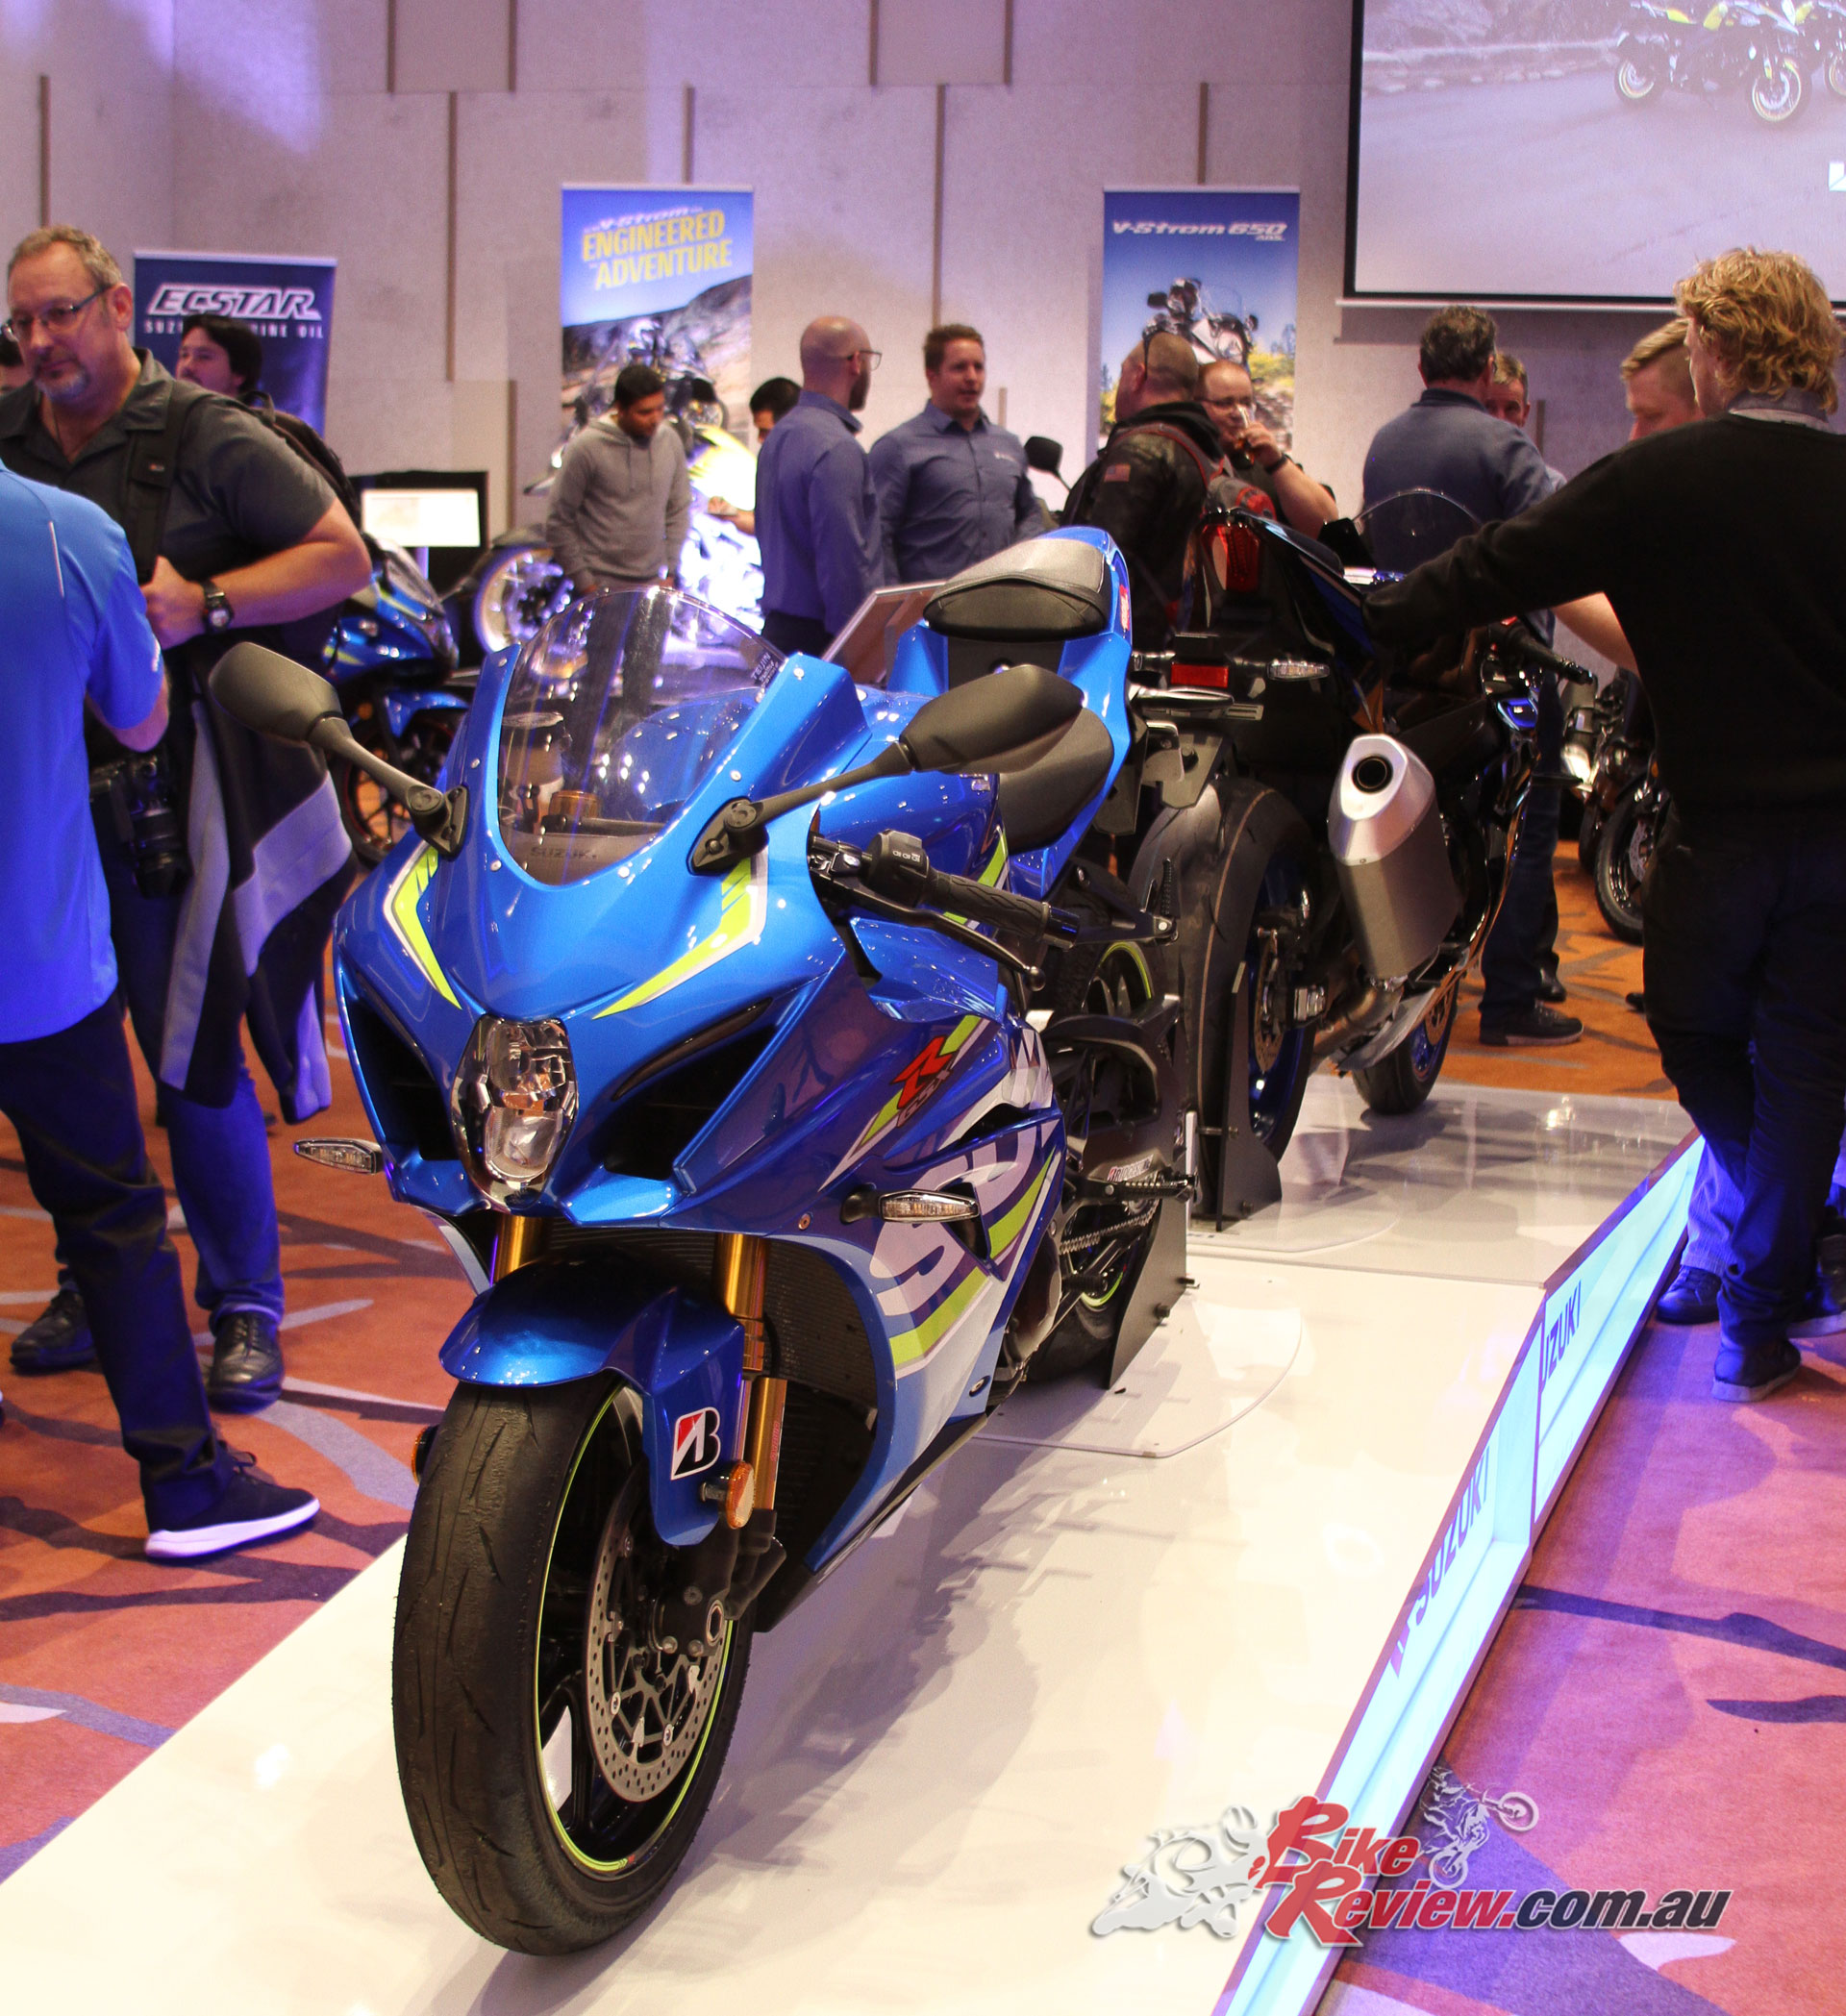 Front view of the GSX-R1000R